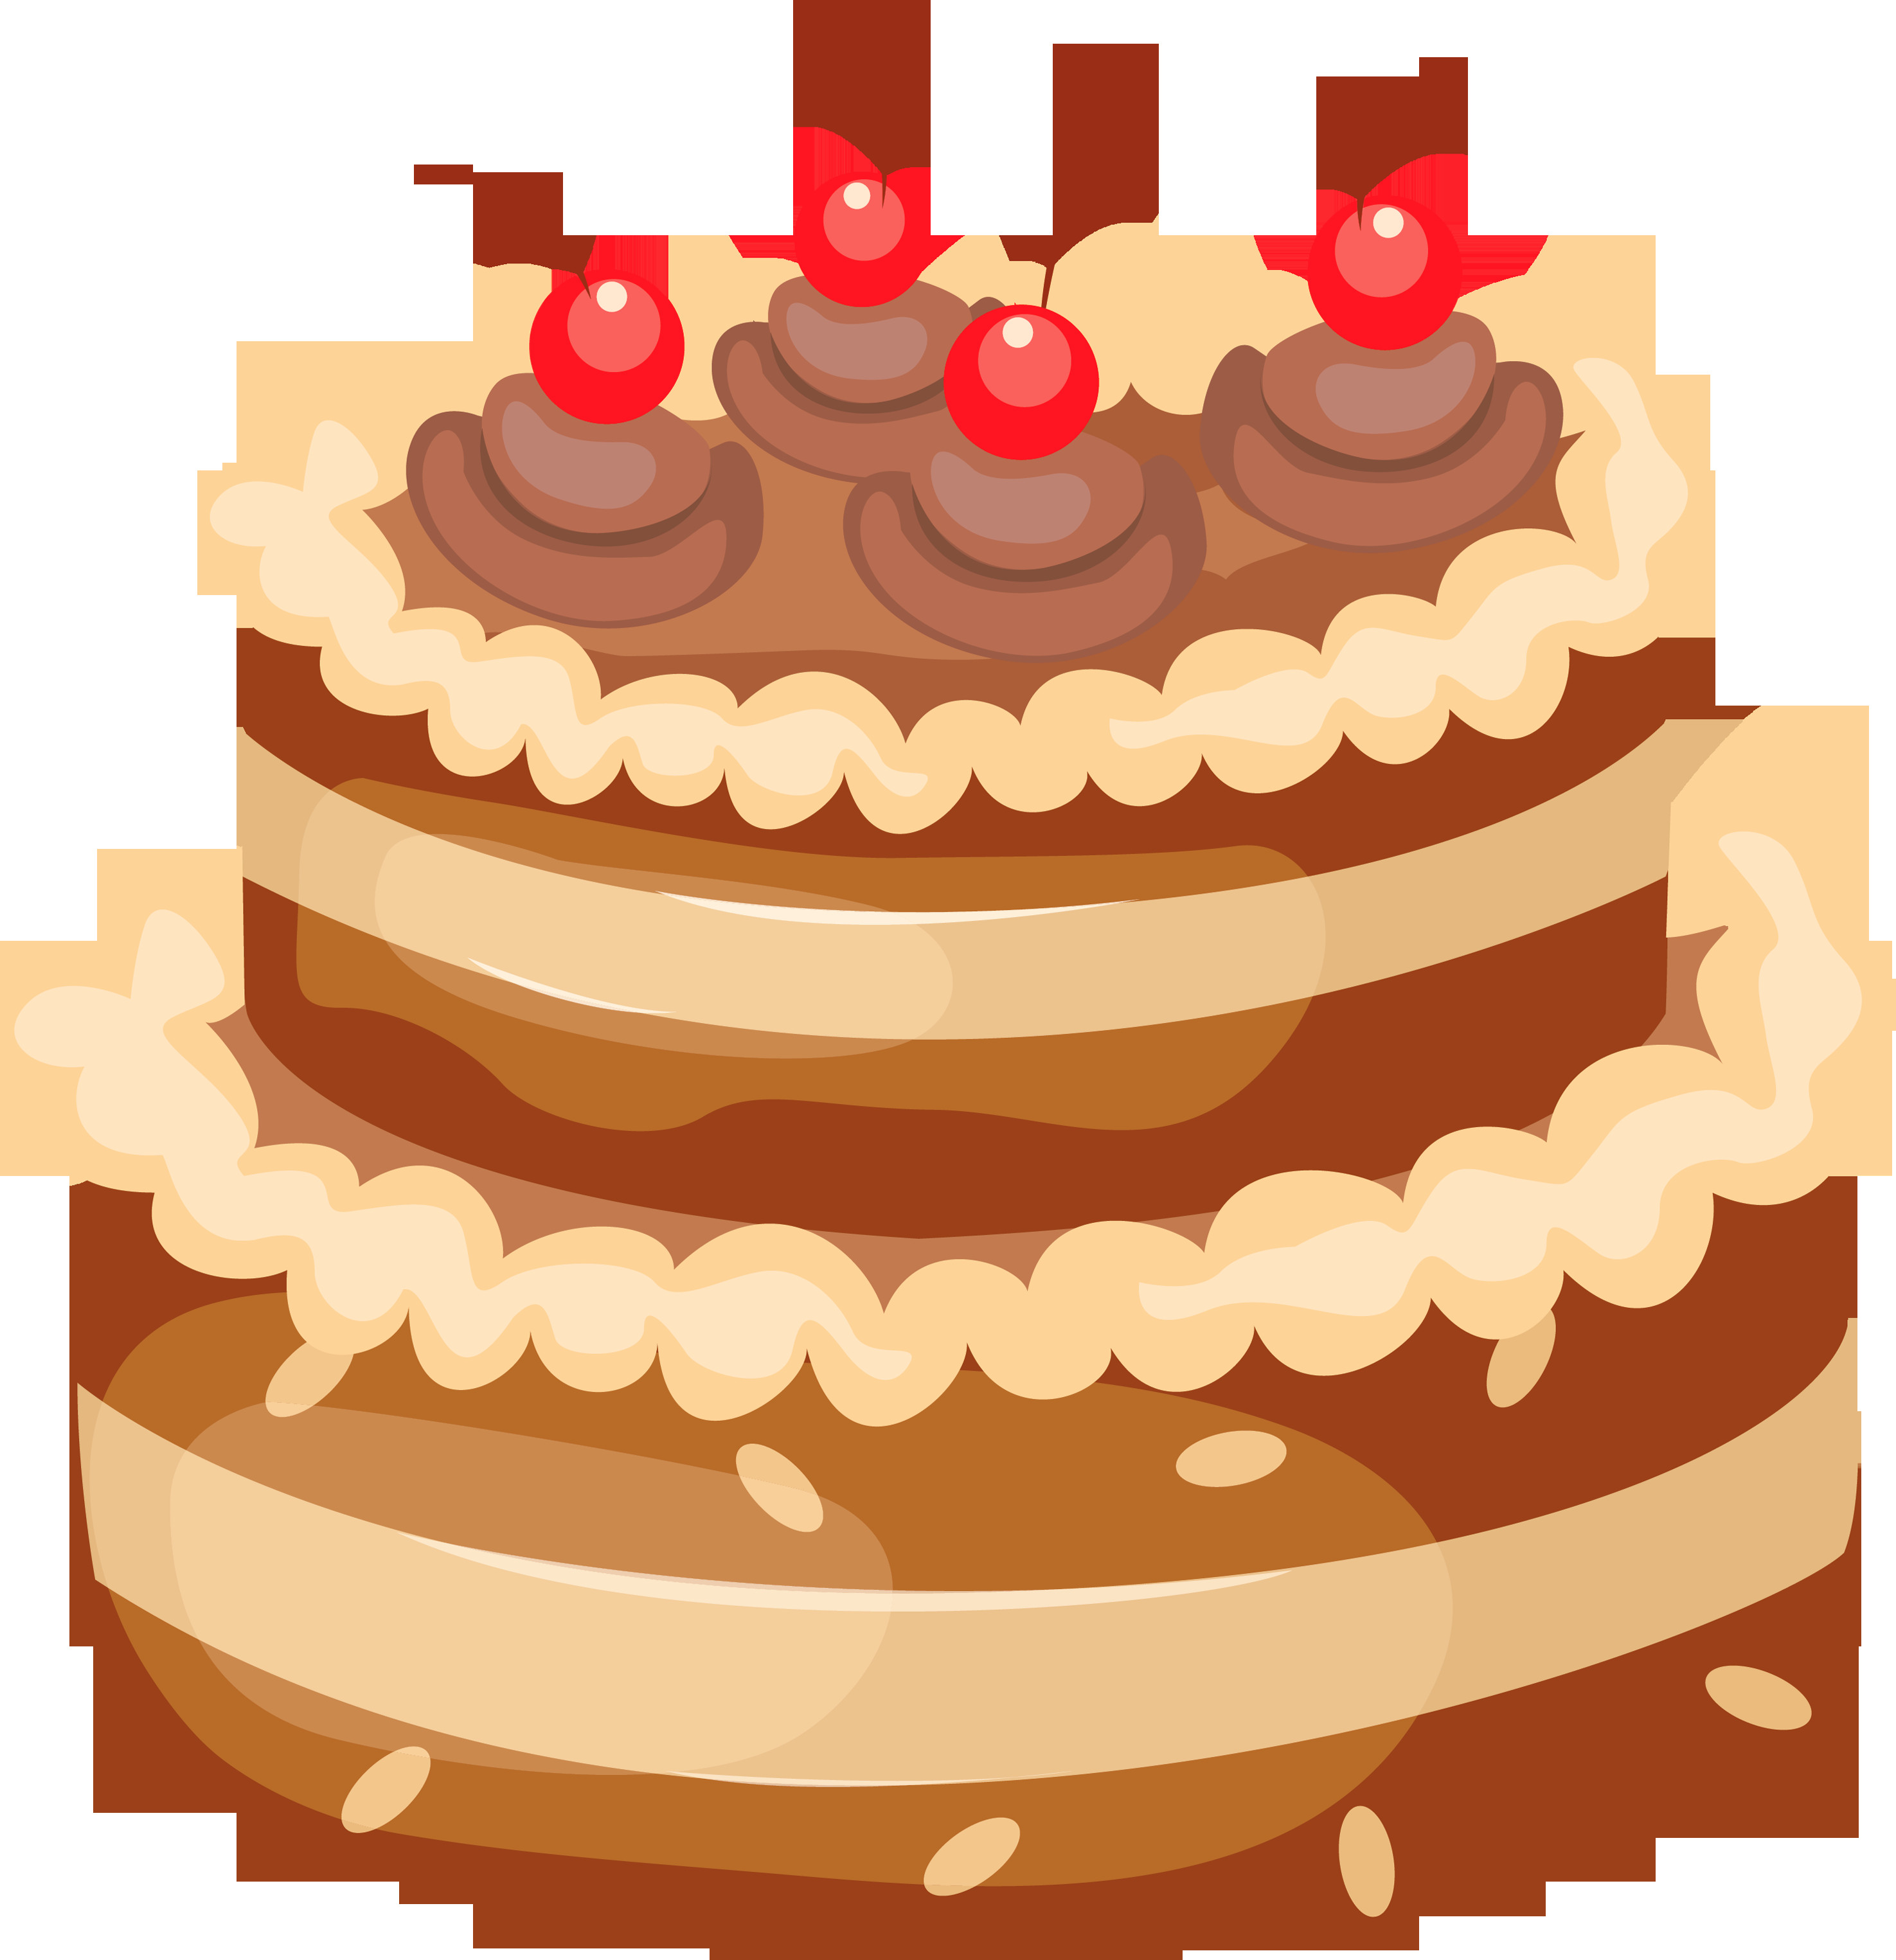 Free Birthday Dessert  Dessert clipart baked goods Pencil and in color dessert